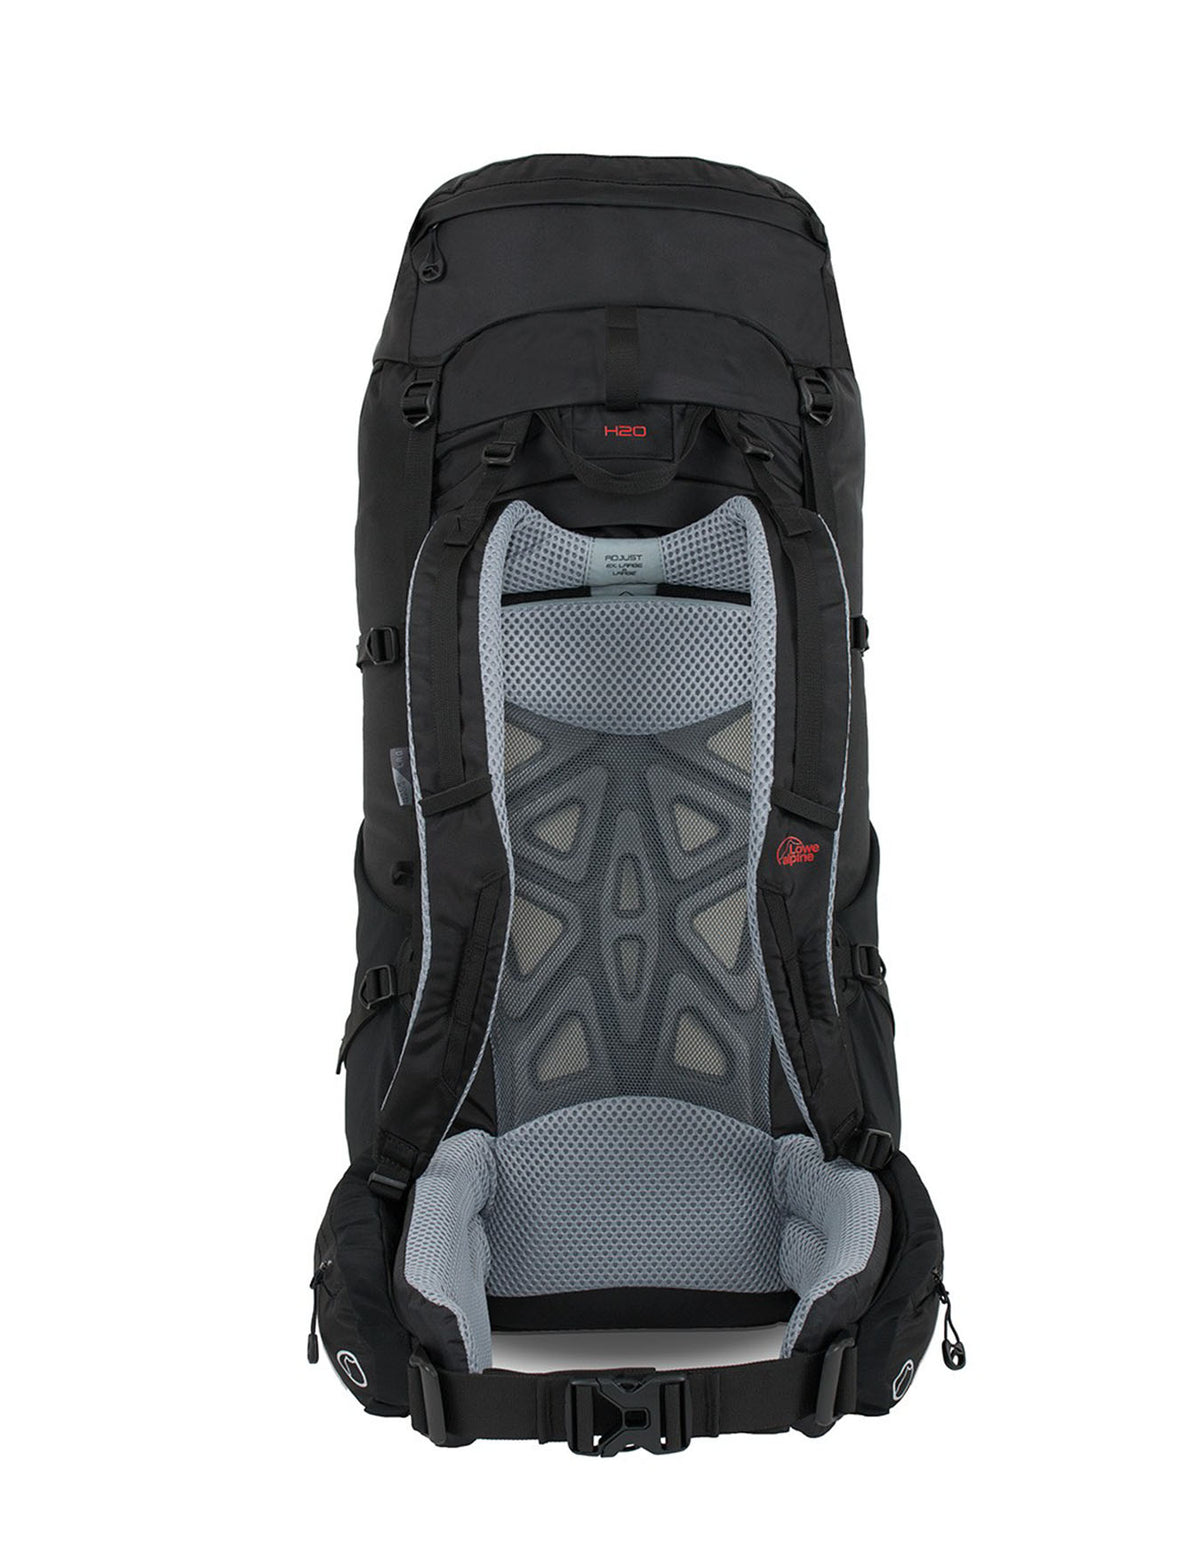 Lowe Alpine-Cholatse ND35 (Design for Women)-Backpacking Pack-Gearaholic.com.sg